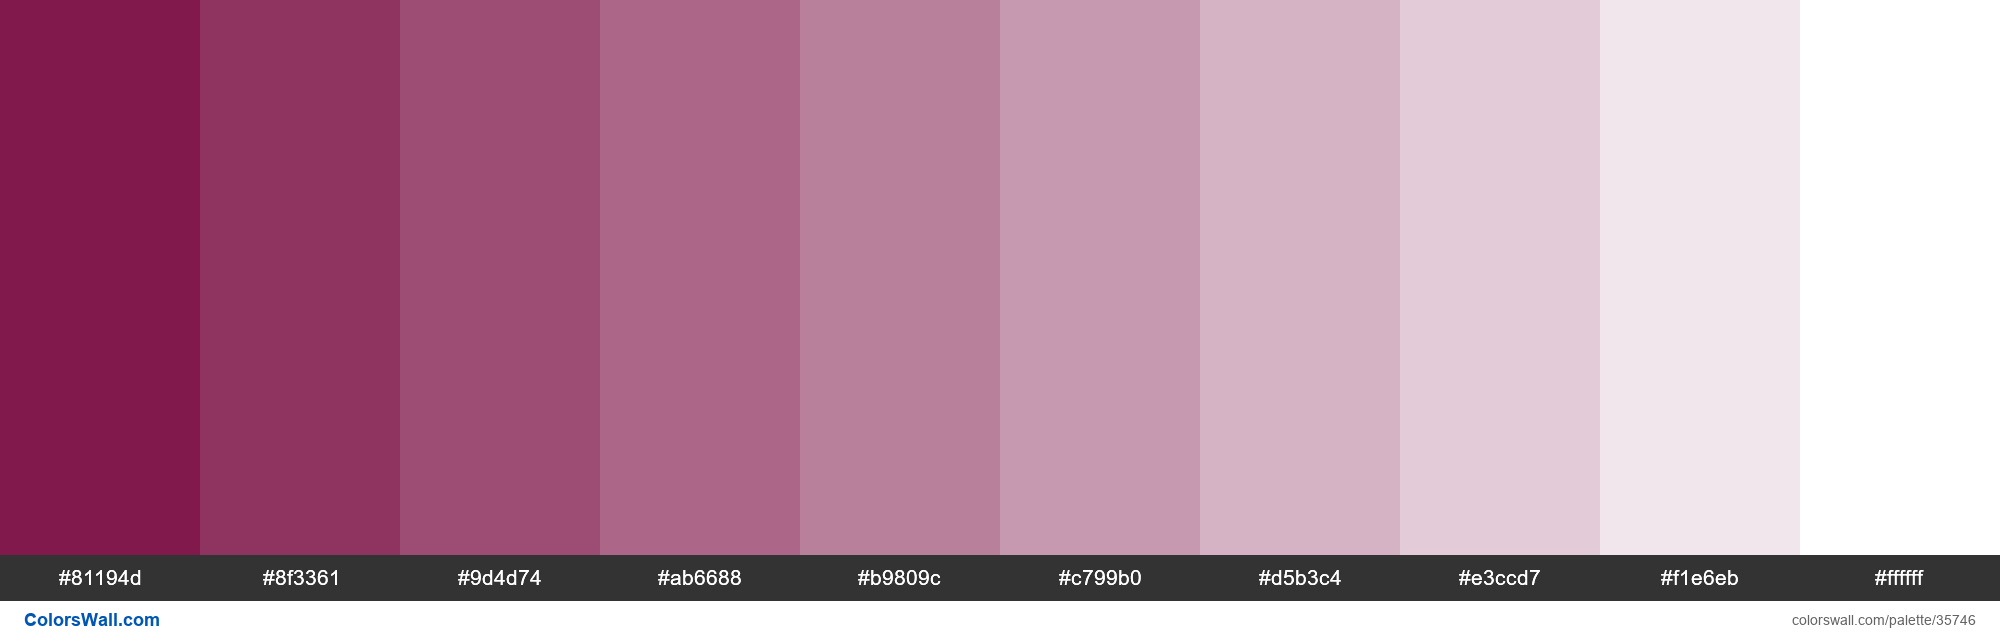 Tints XKCD Color merlot #730039 hex - #35746